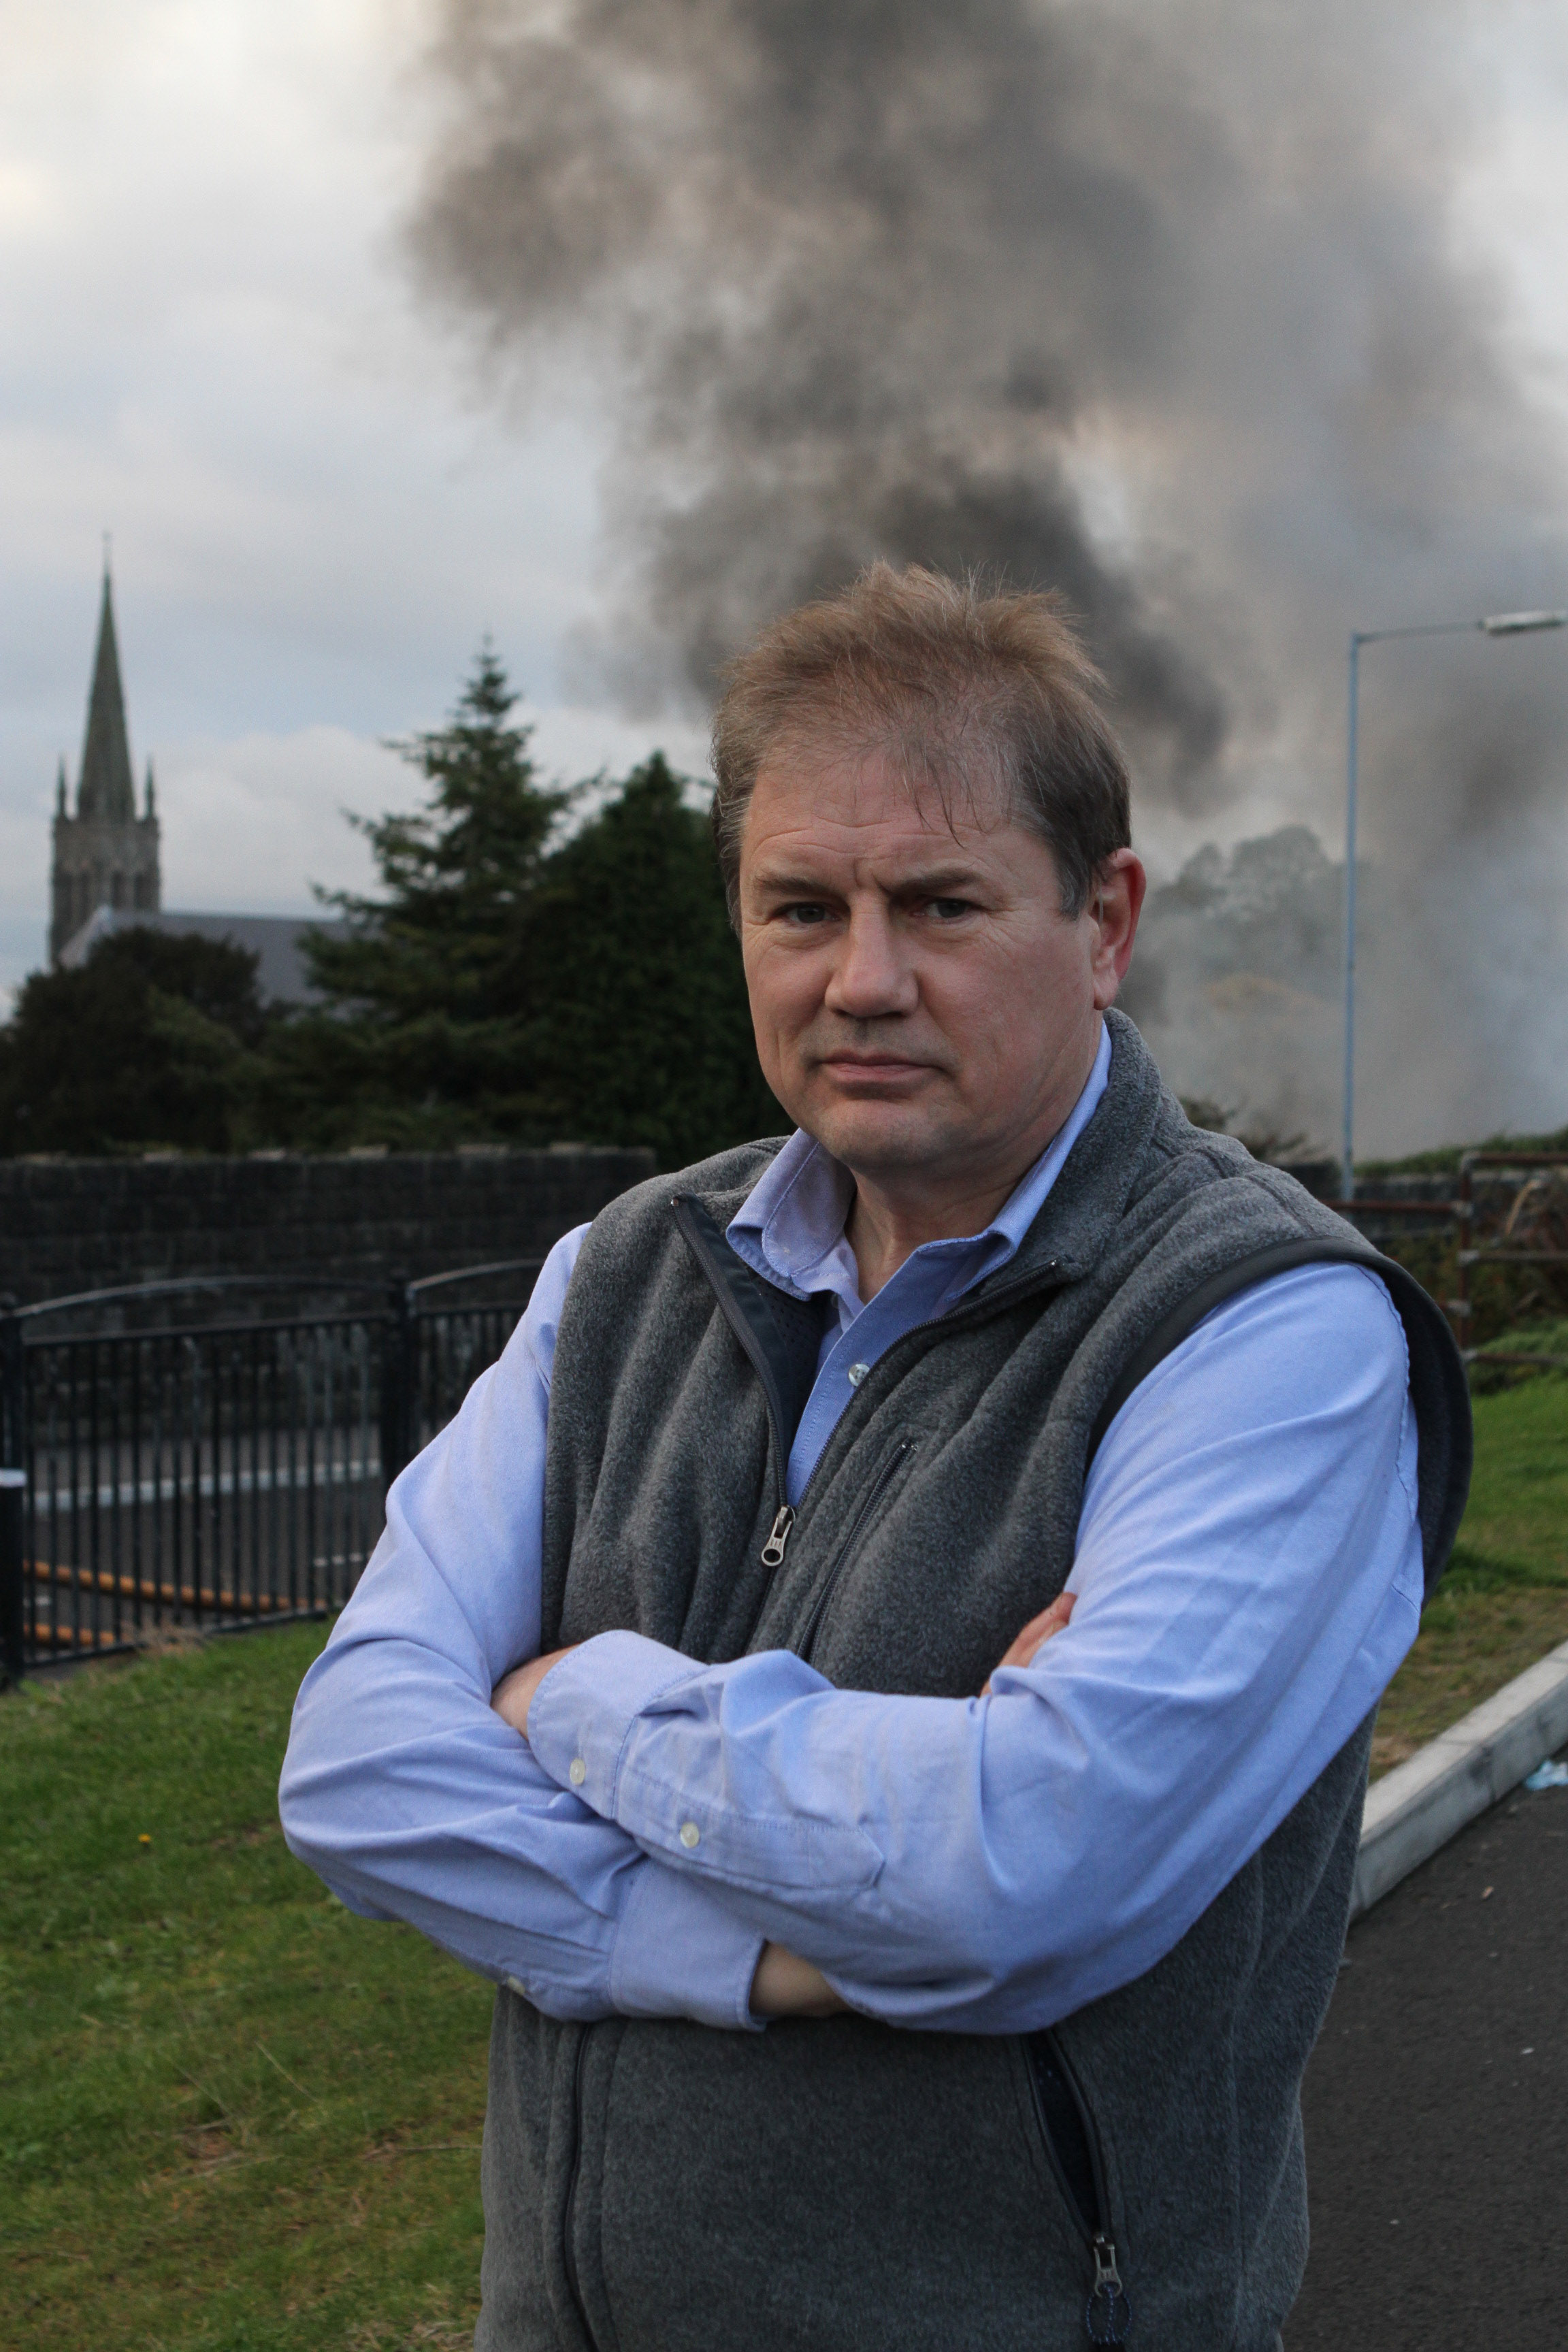 Cllr Cadogan Enright on the scene as the old surgery in Pound lane burns